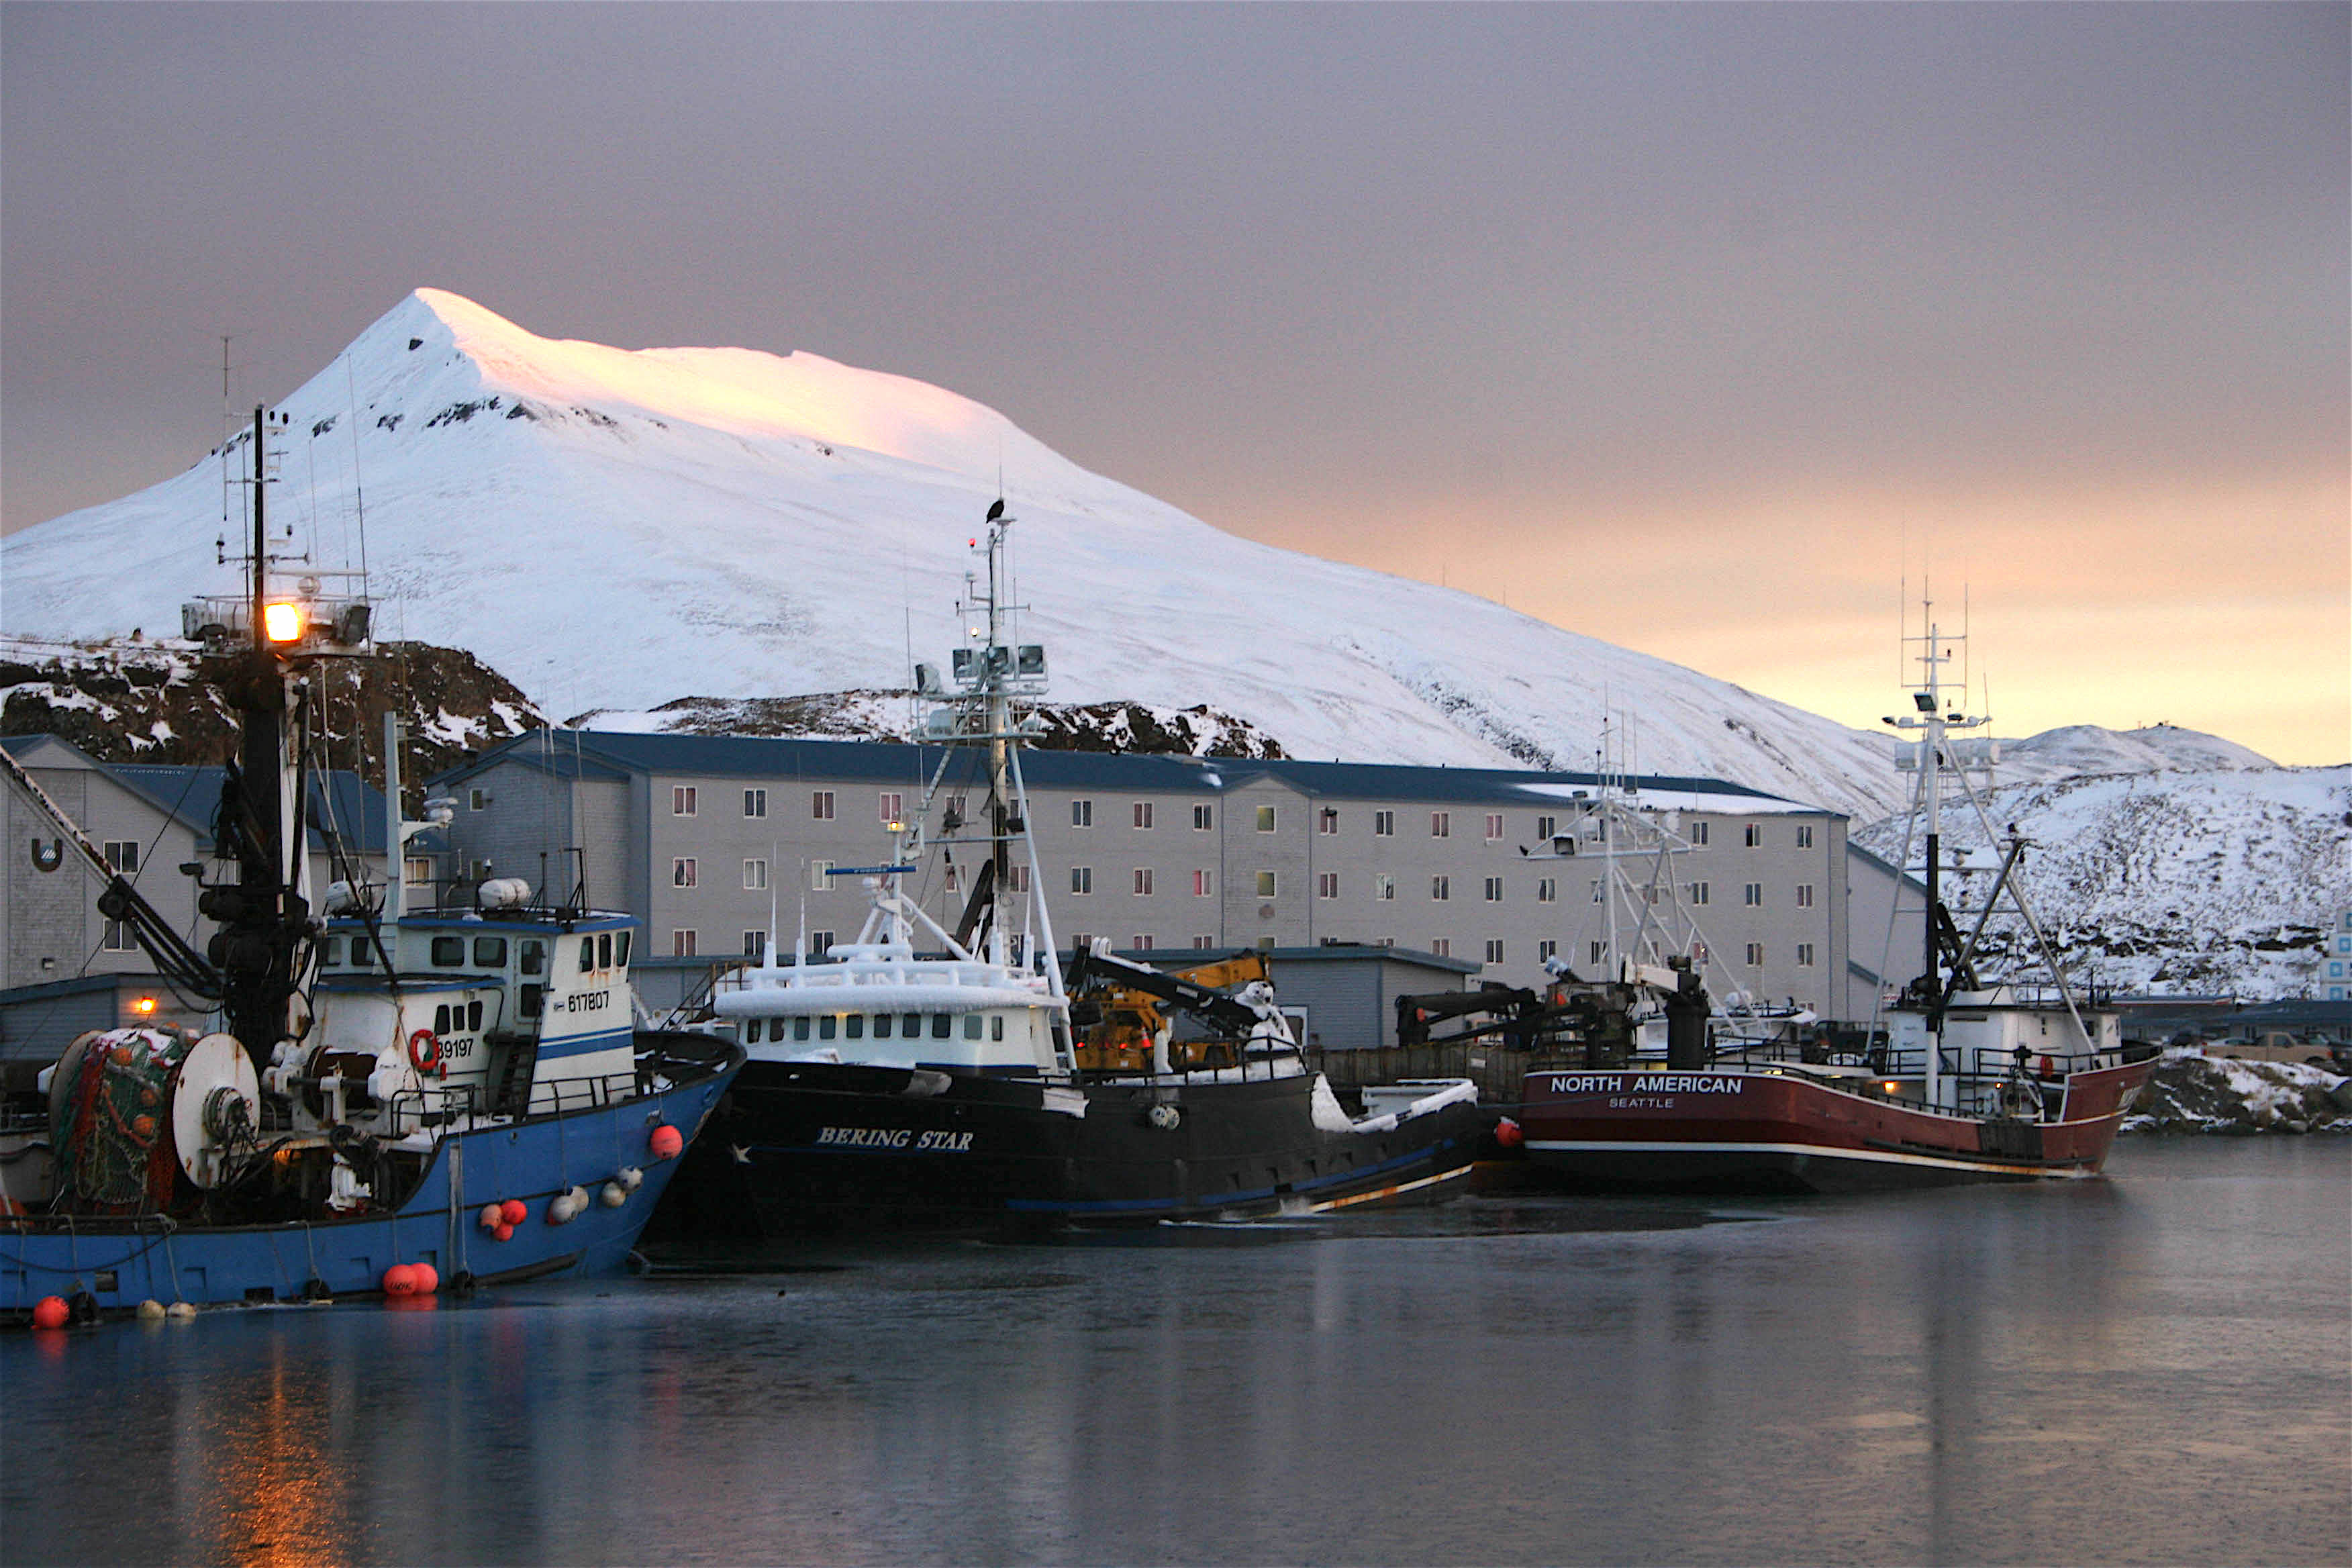 dutch harbor Find a fedex location in dutch harbor, ak get directions, drop off locations, store hours, phone numbers, deals and savings search now.